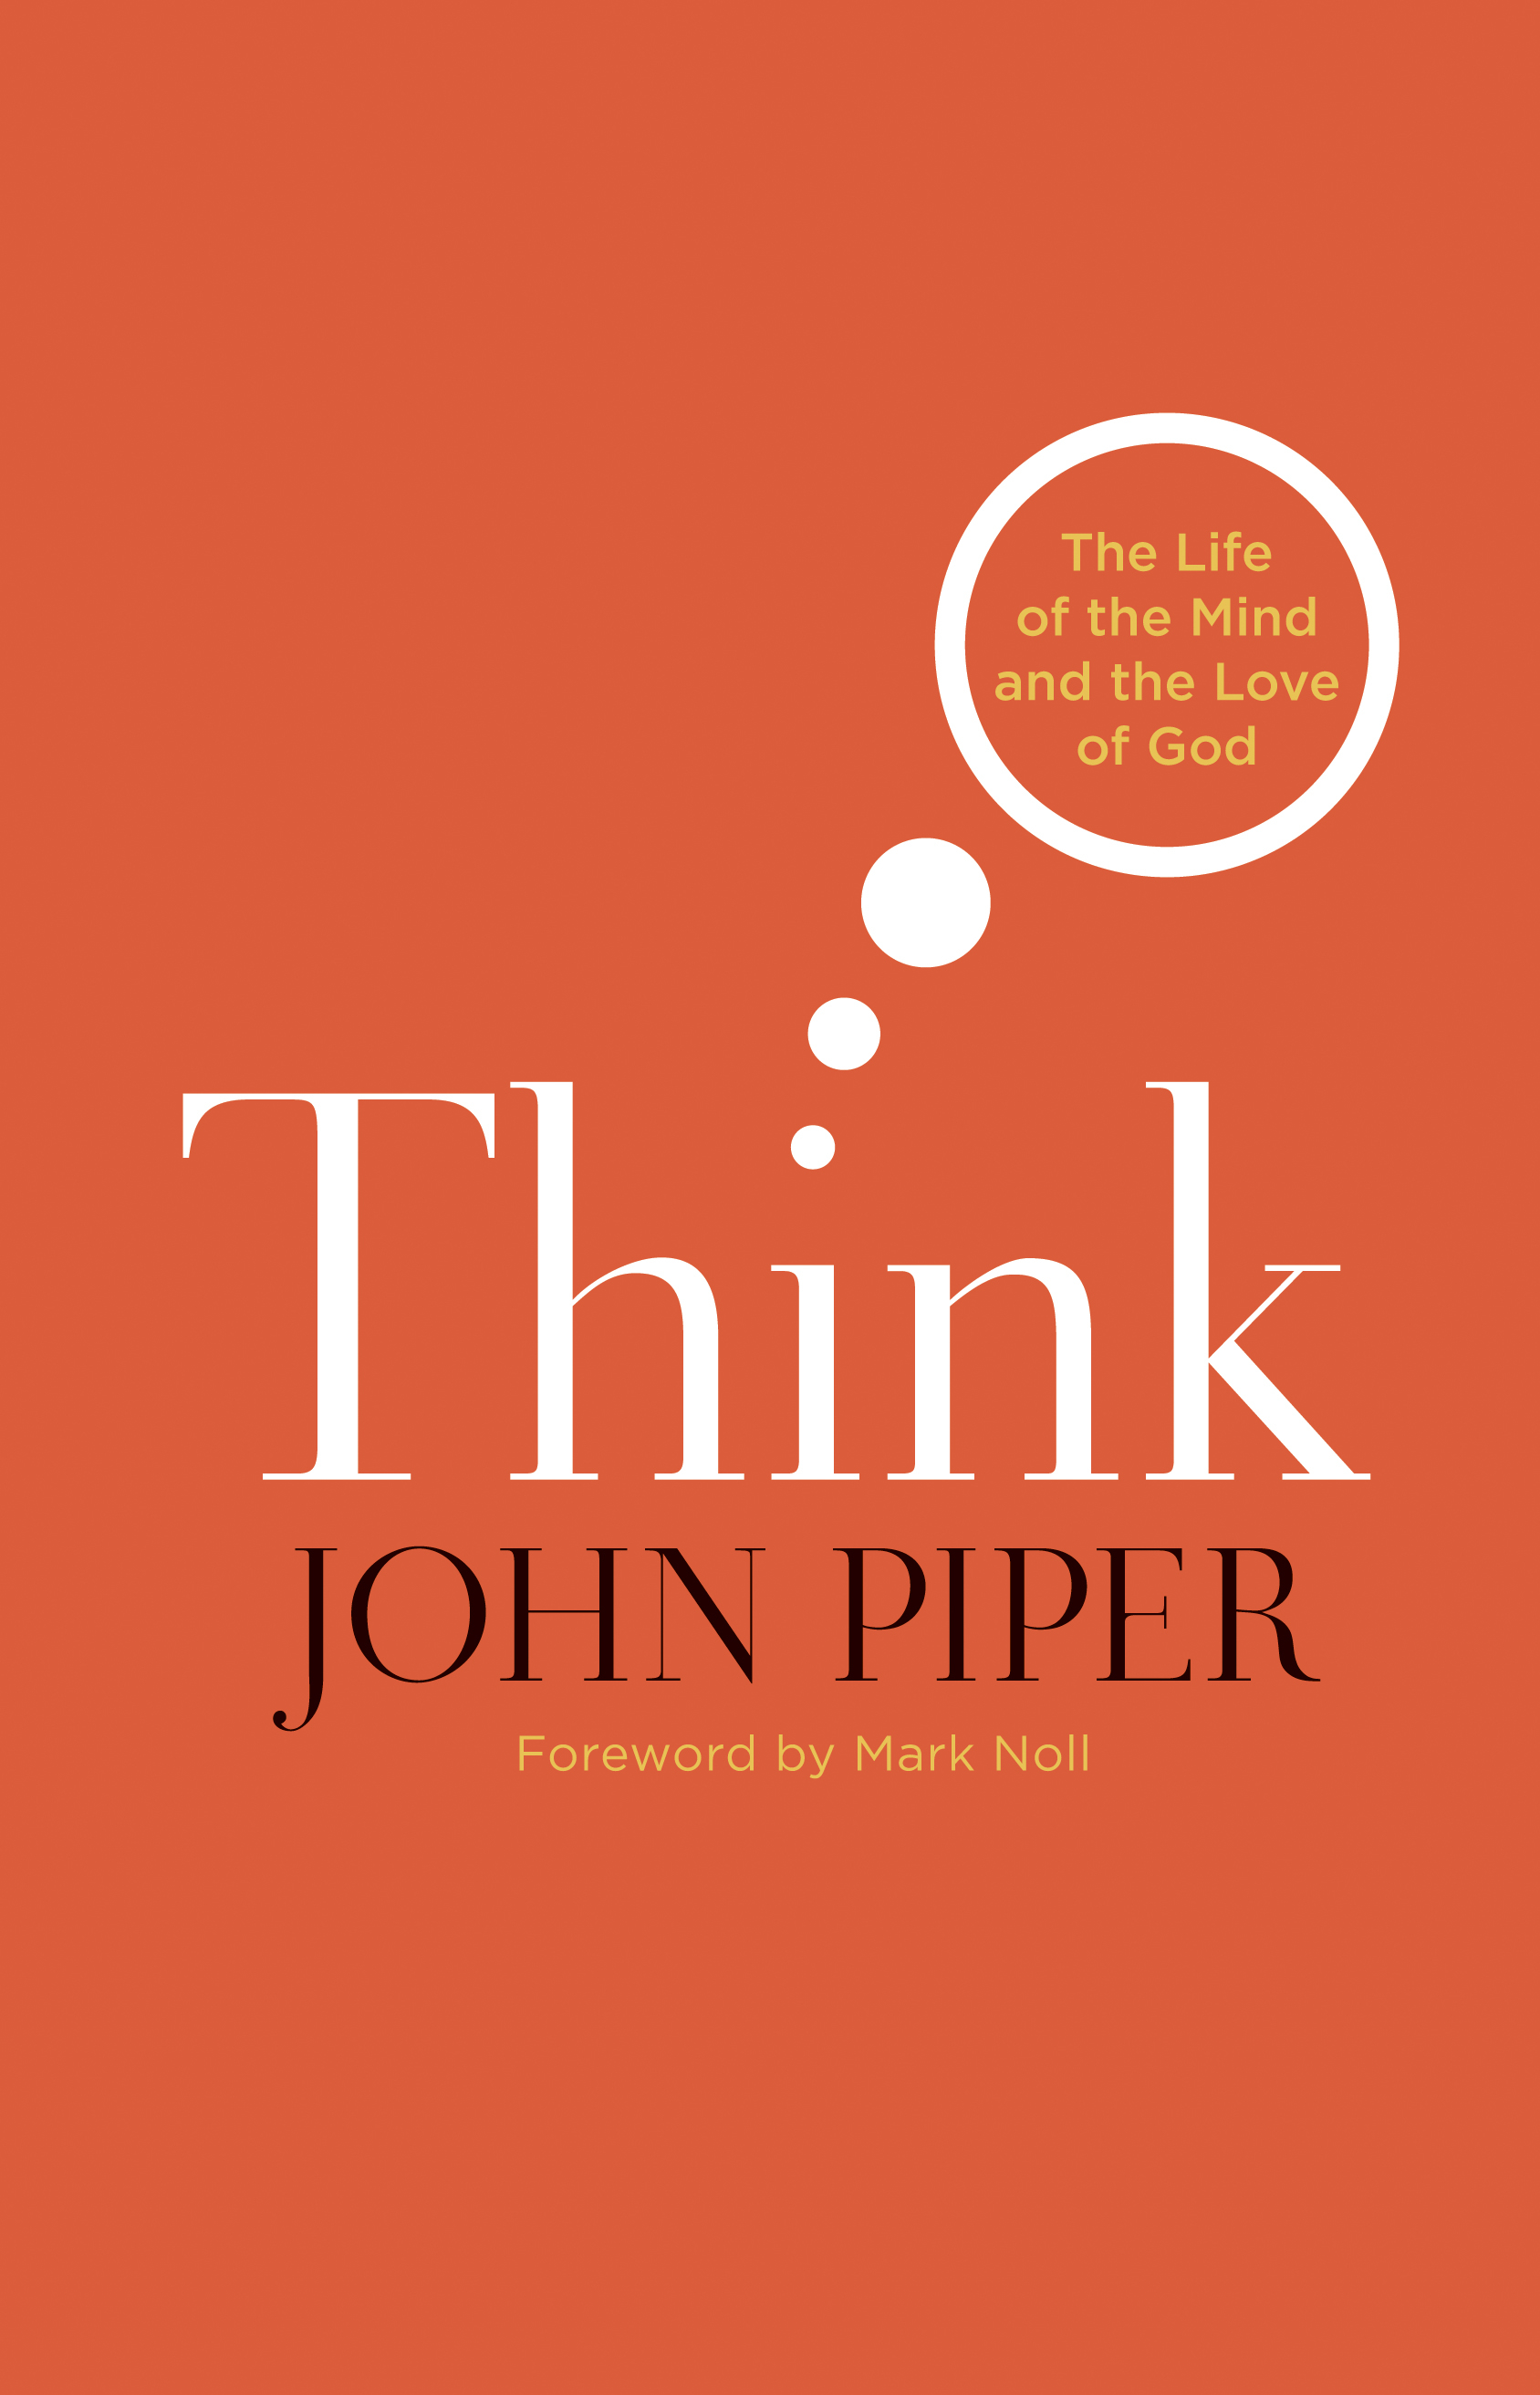 Think (Foreword by Mark Noll)